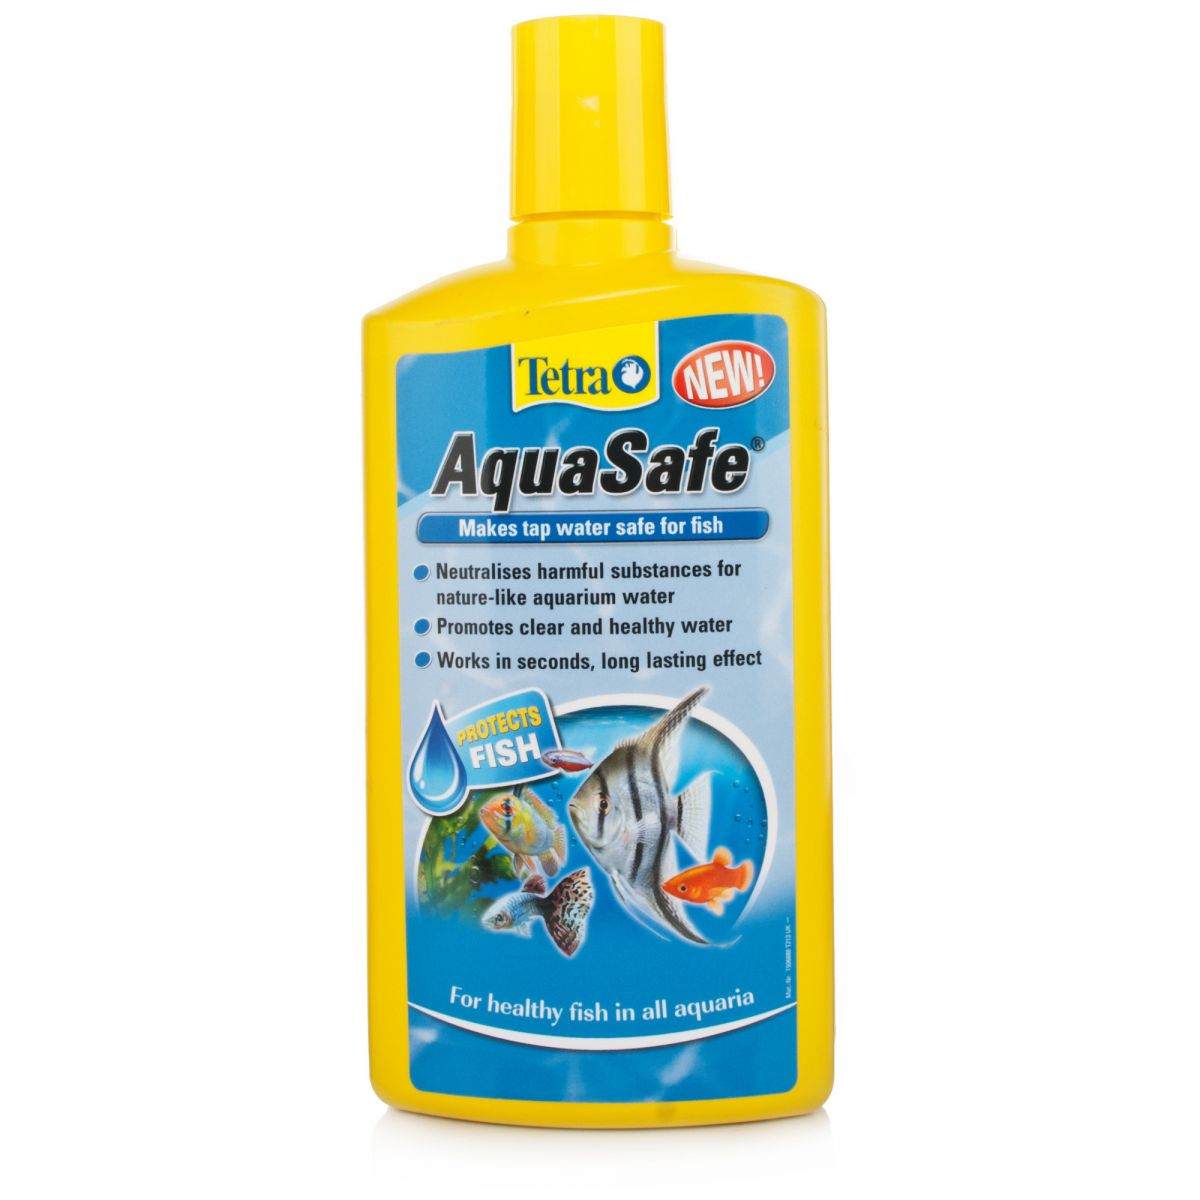 Tetra Aquasafe 0100 ml